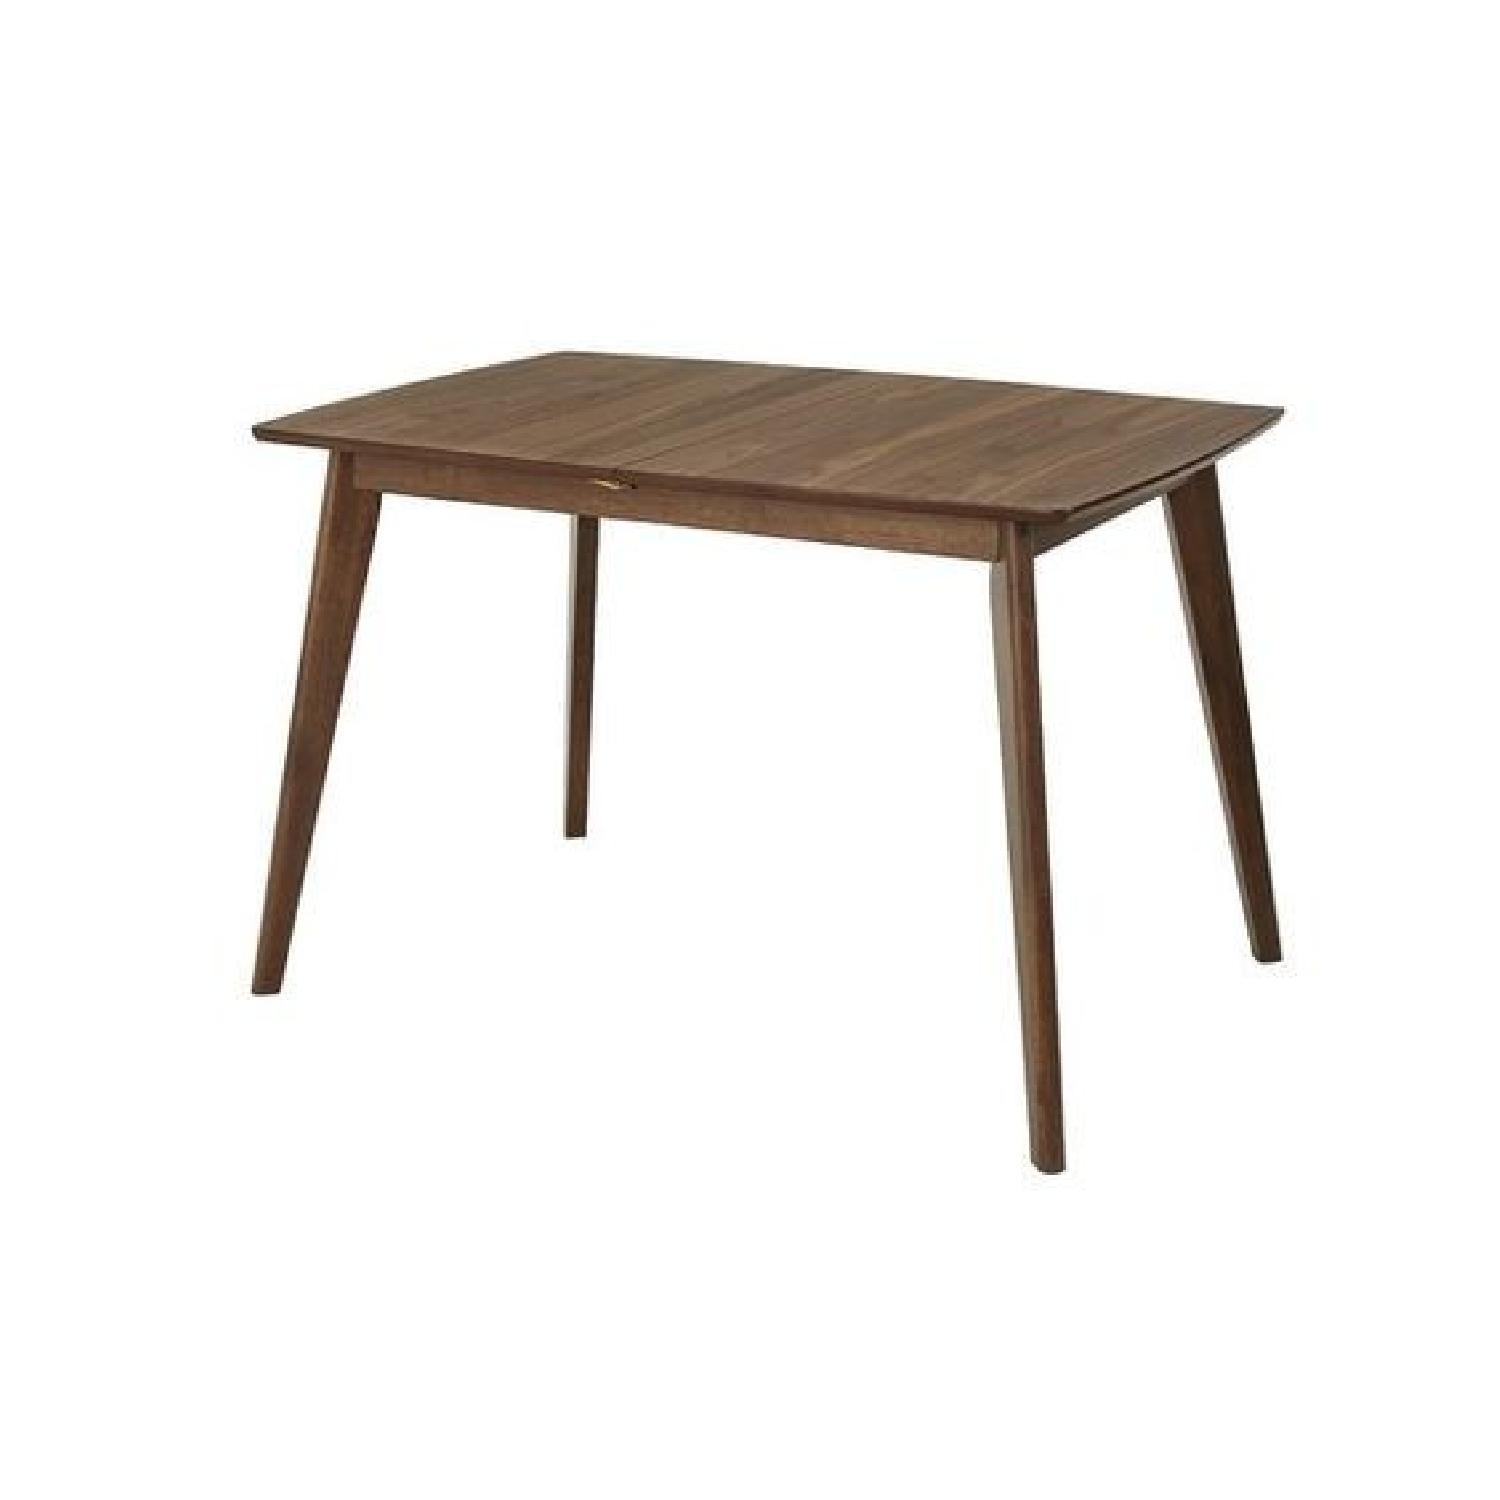 Bungalow Rose Rockaway Extendable Solid Wood Dining Table - image-0